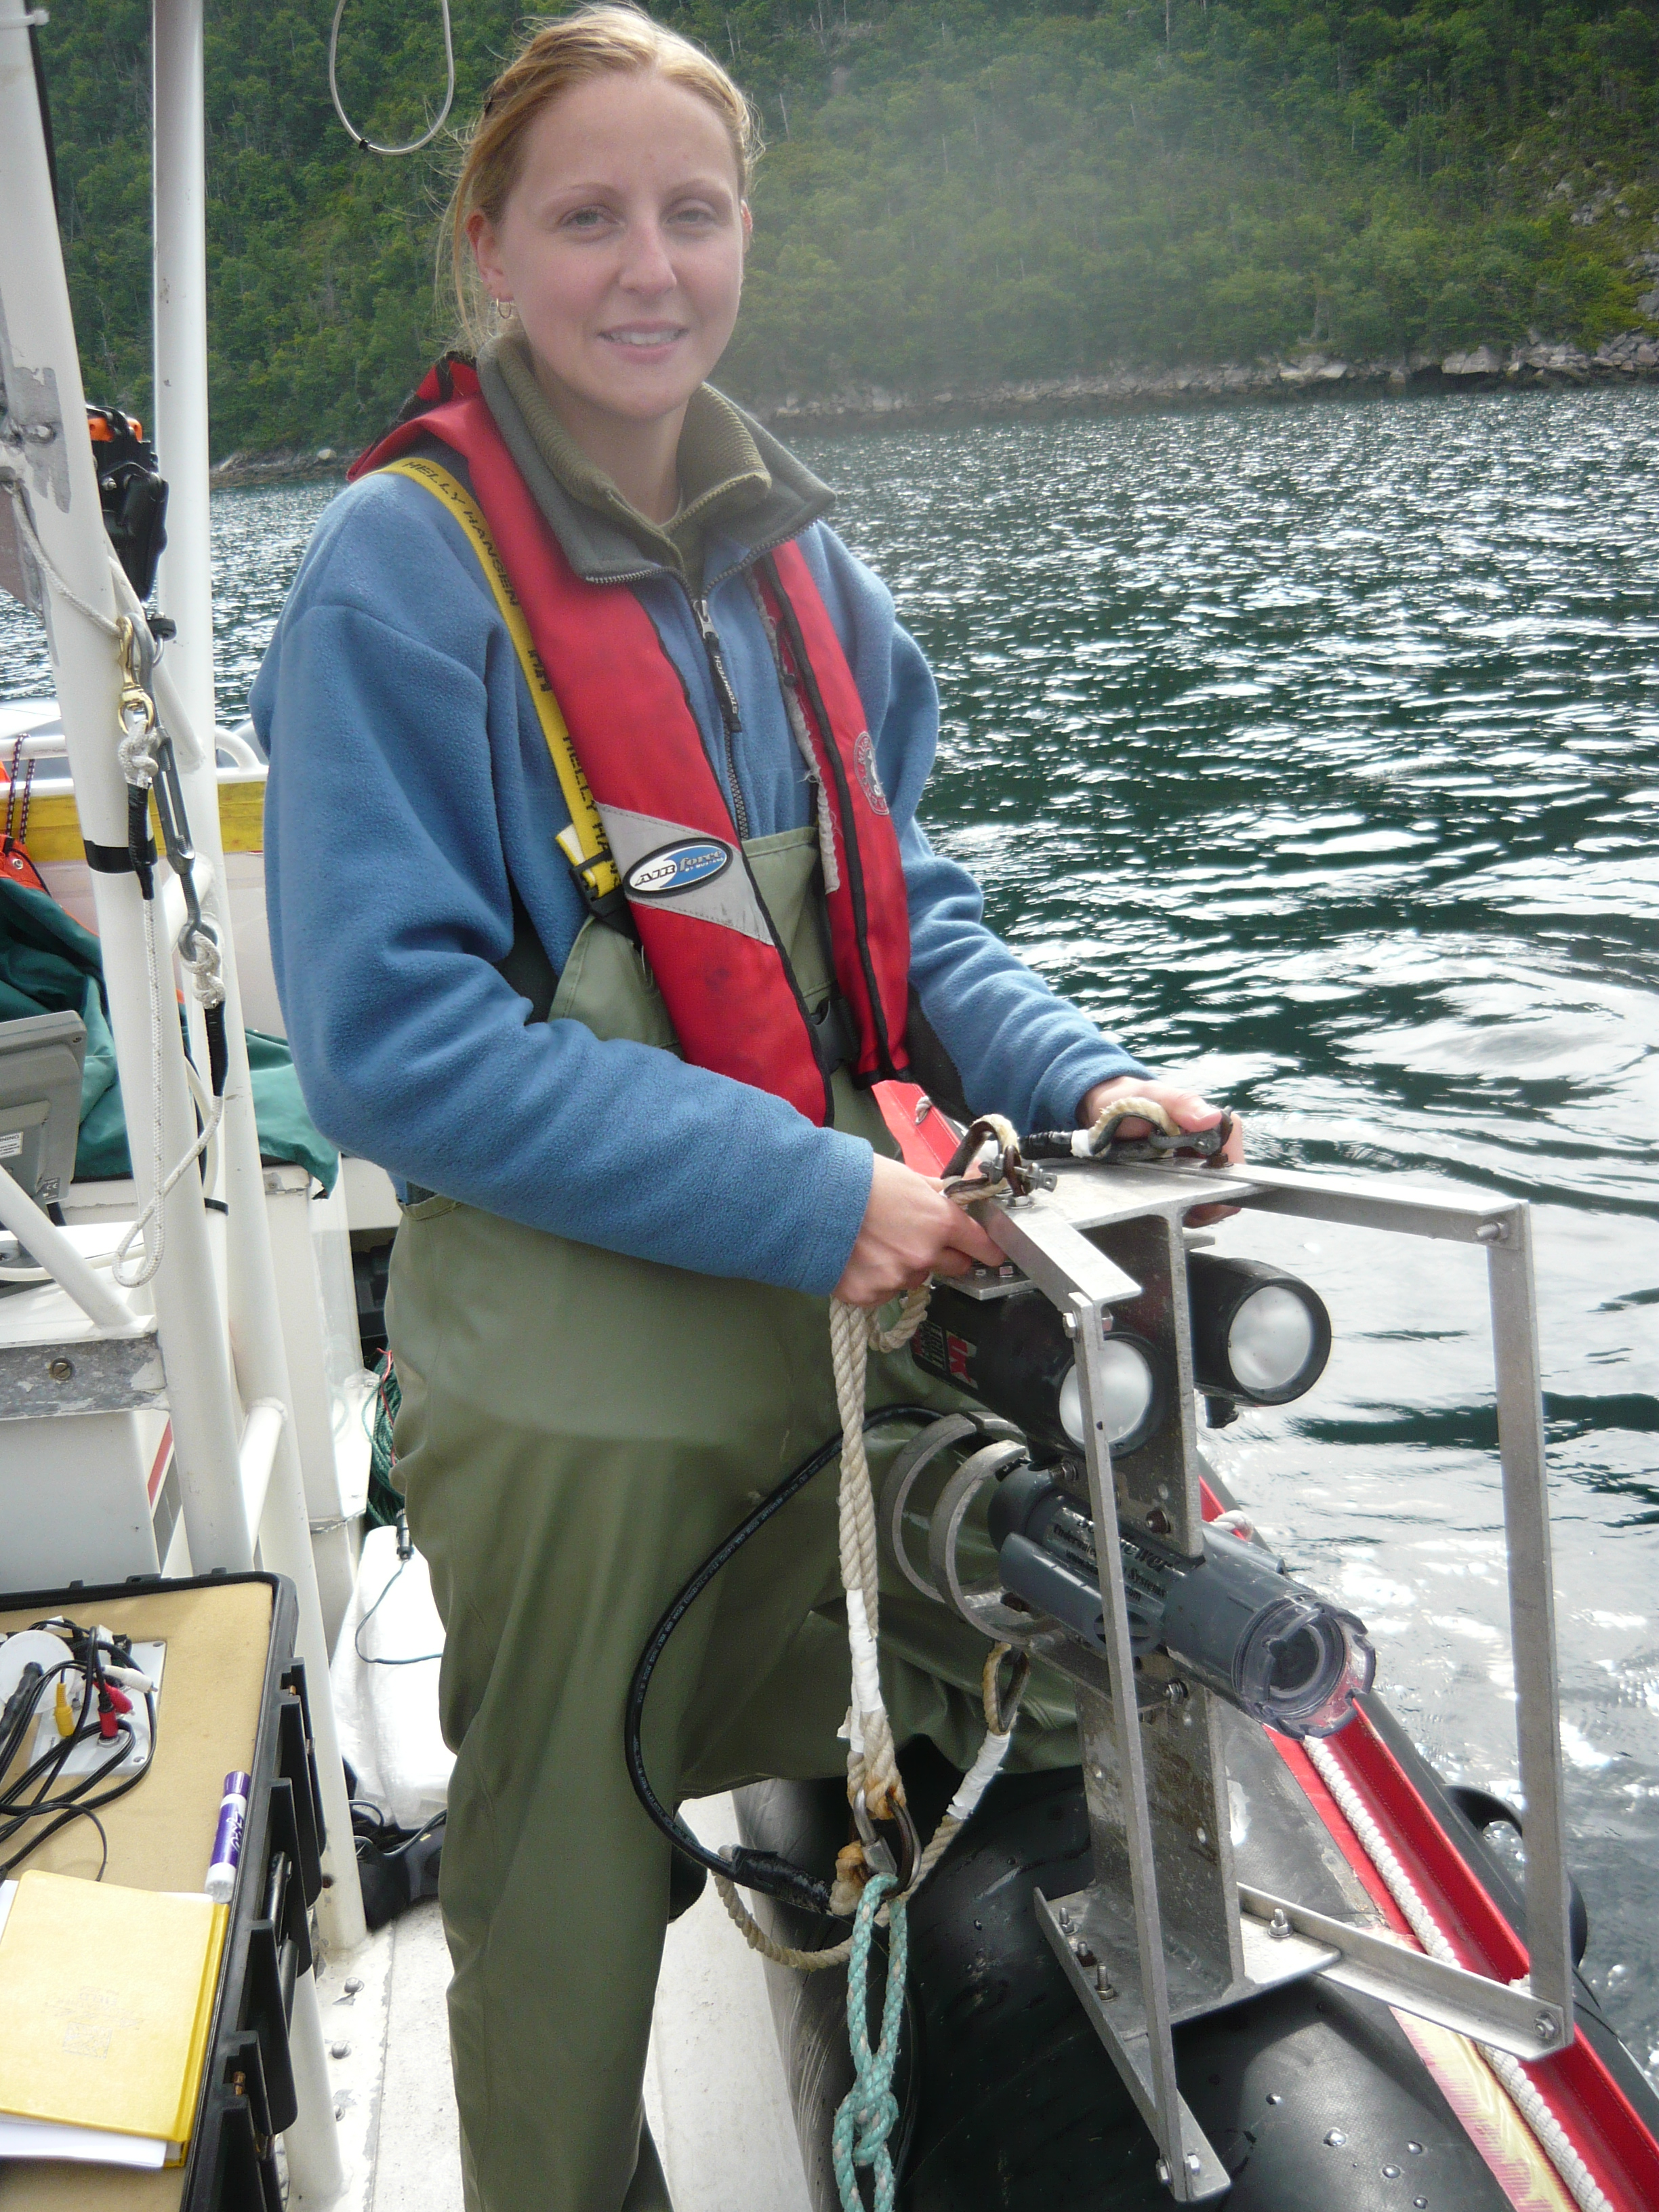 Allison Kendall at work on boat